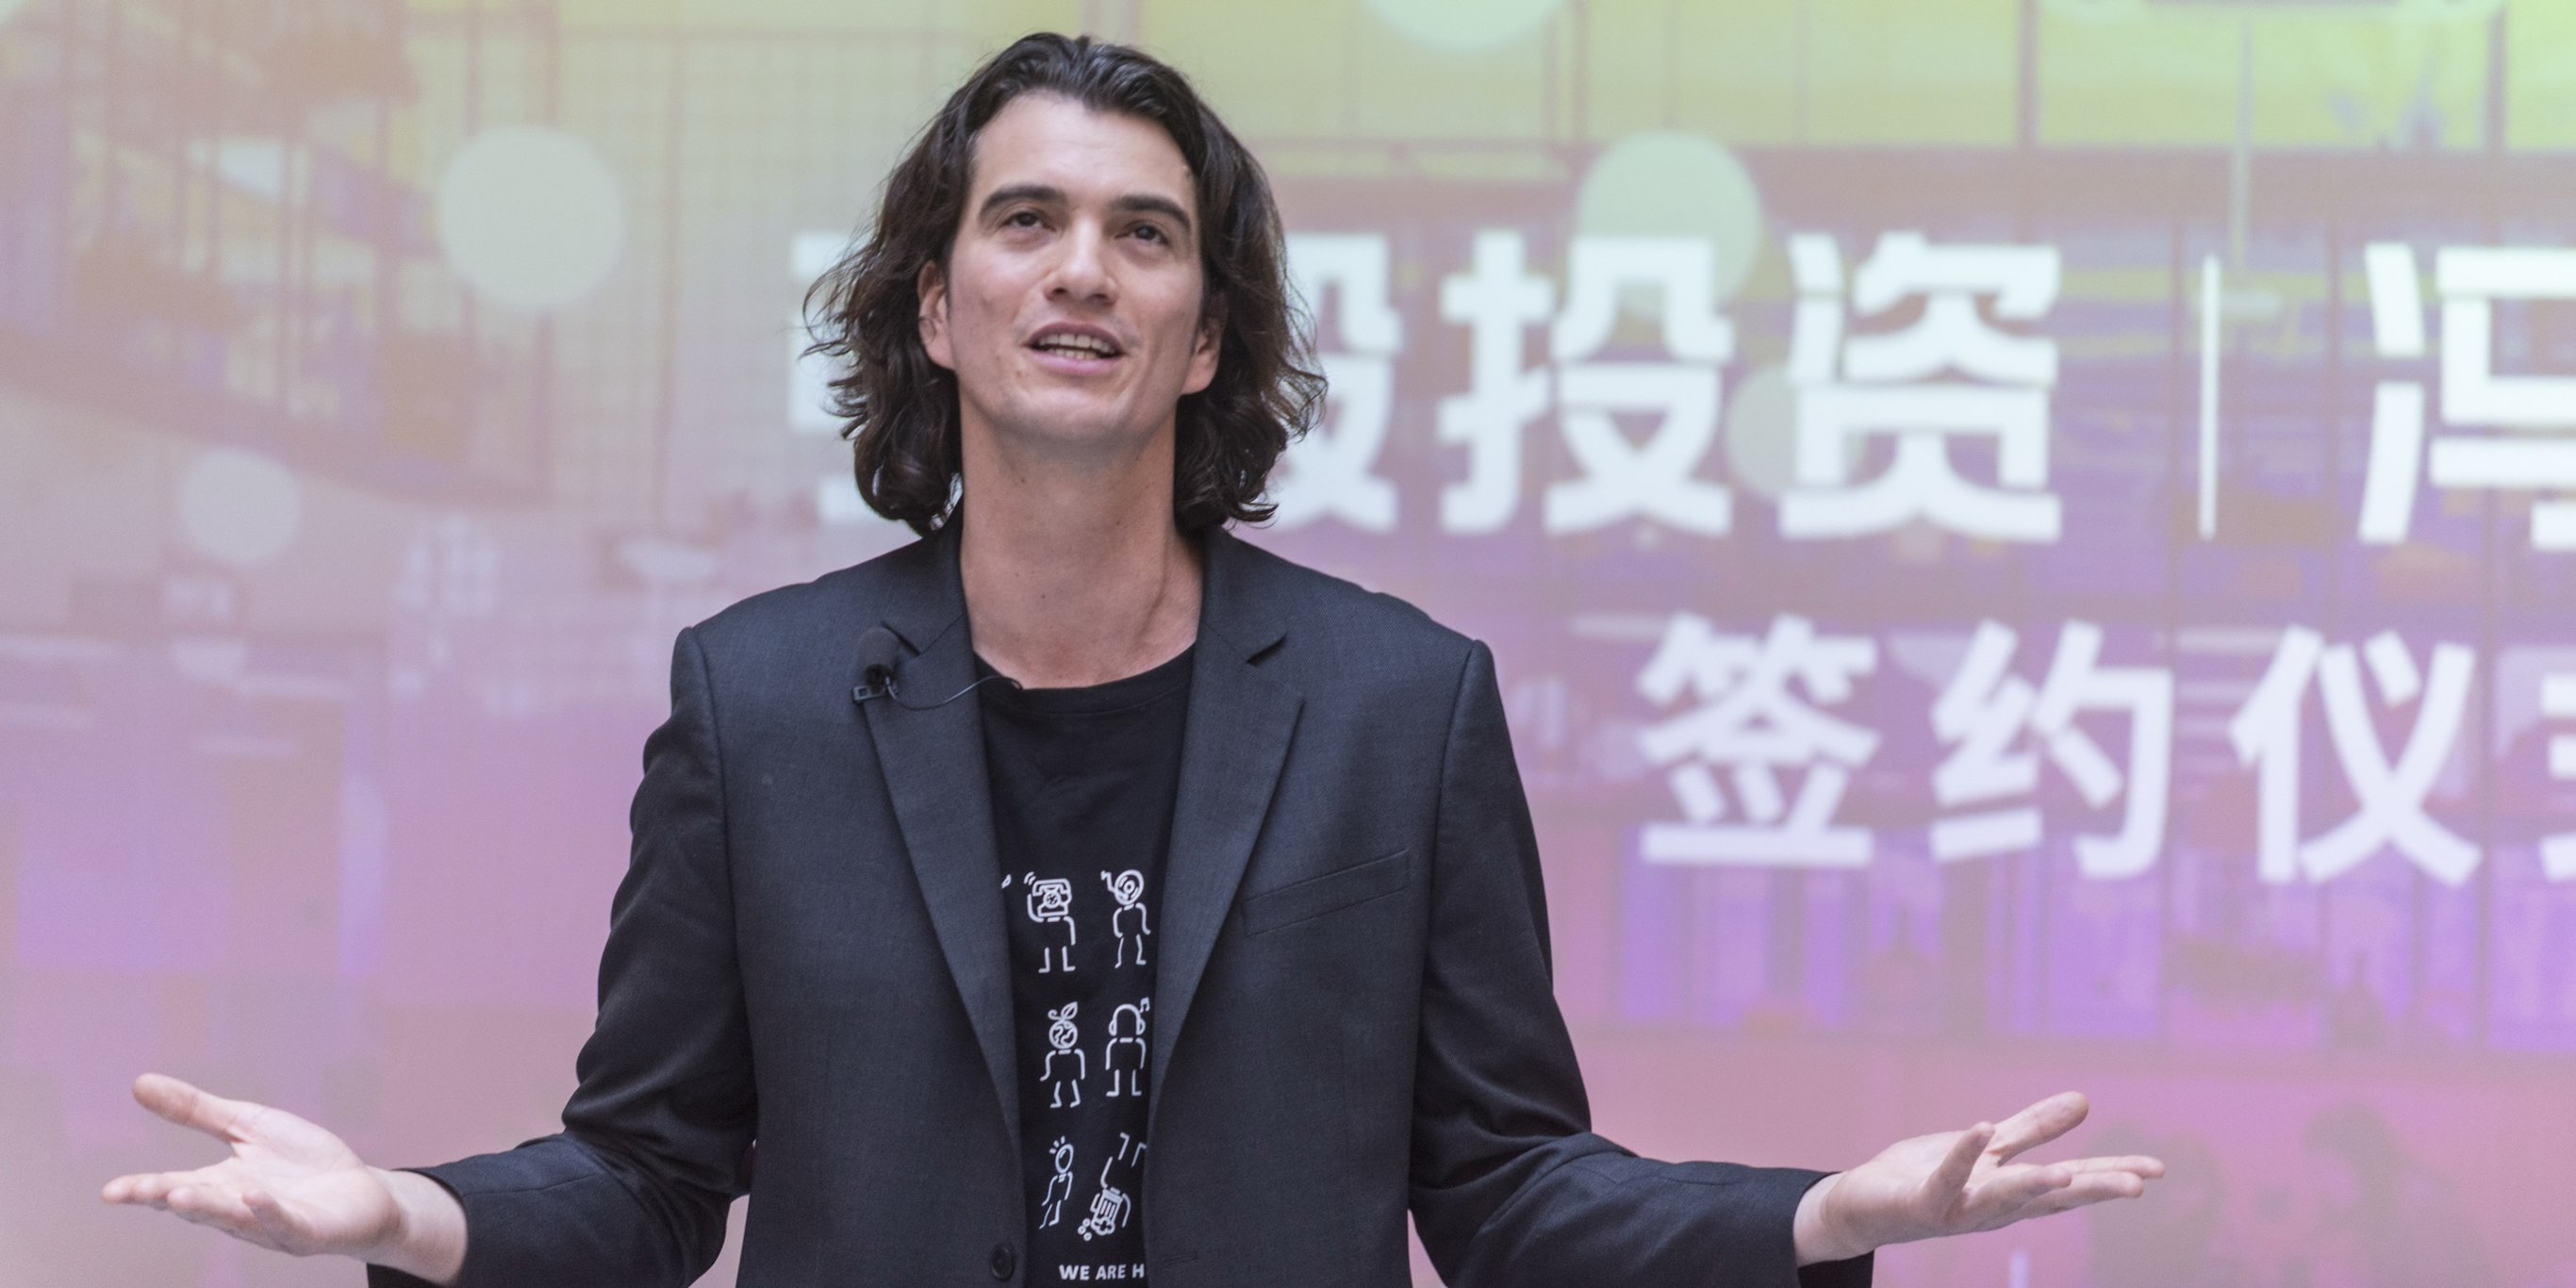 WeWork's new CEOs could still have a rough time dealing with Adam Neumann, experts say